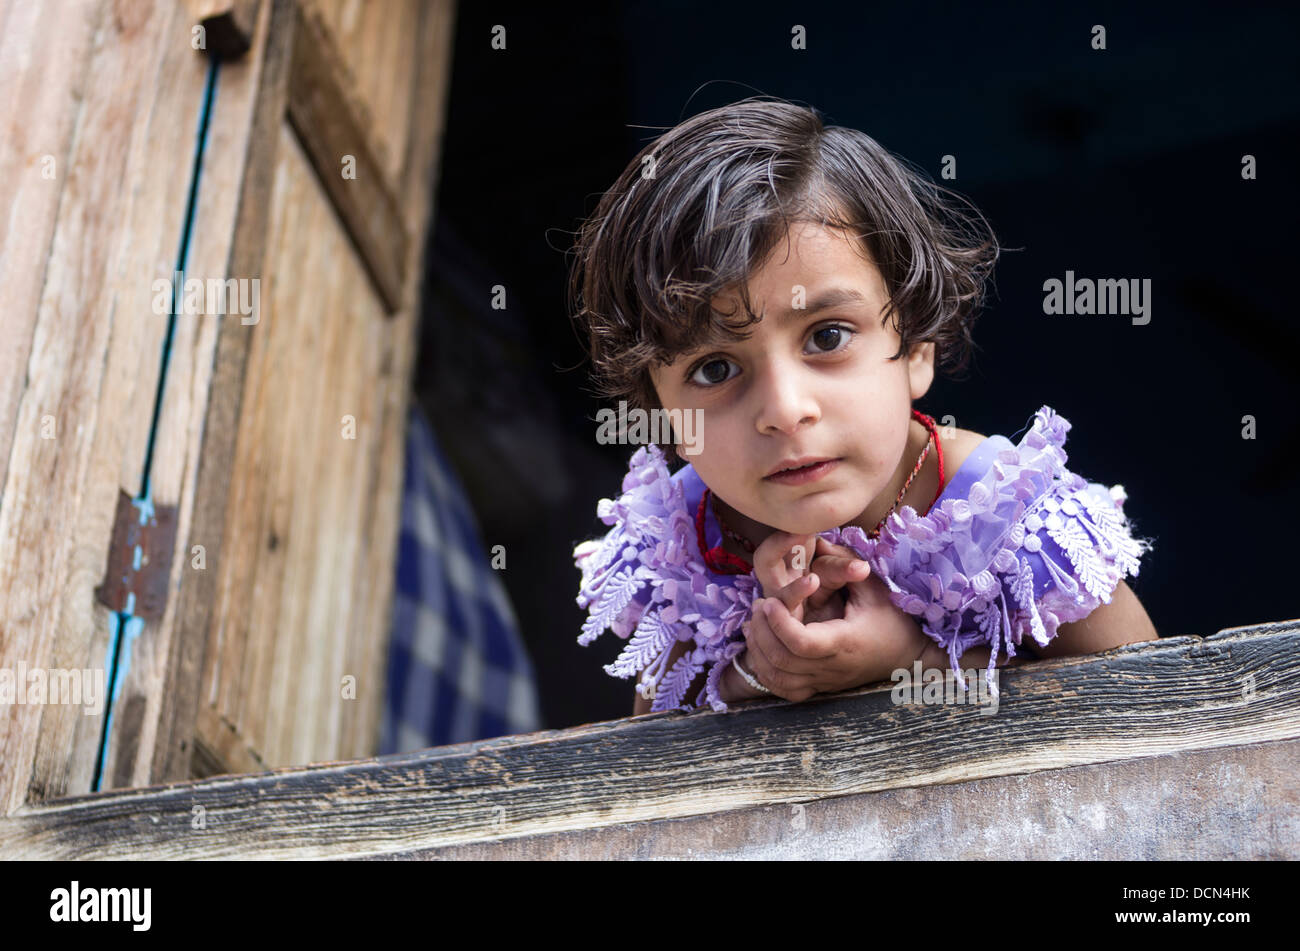 Indian Child  - Jodhpur, Rajashtan, India - Stock Image